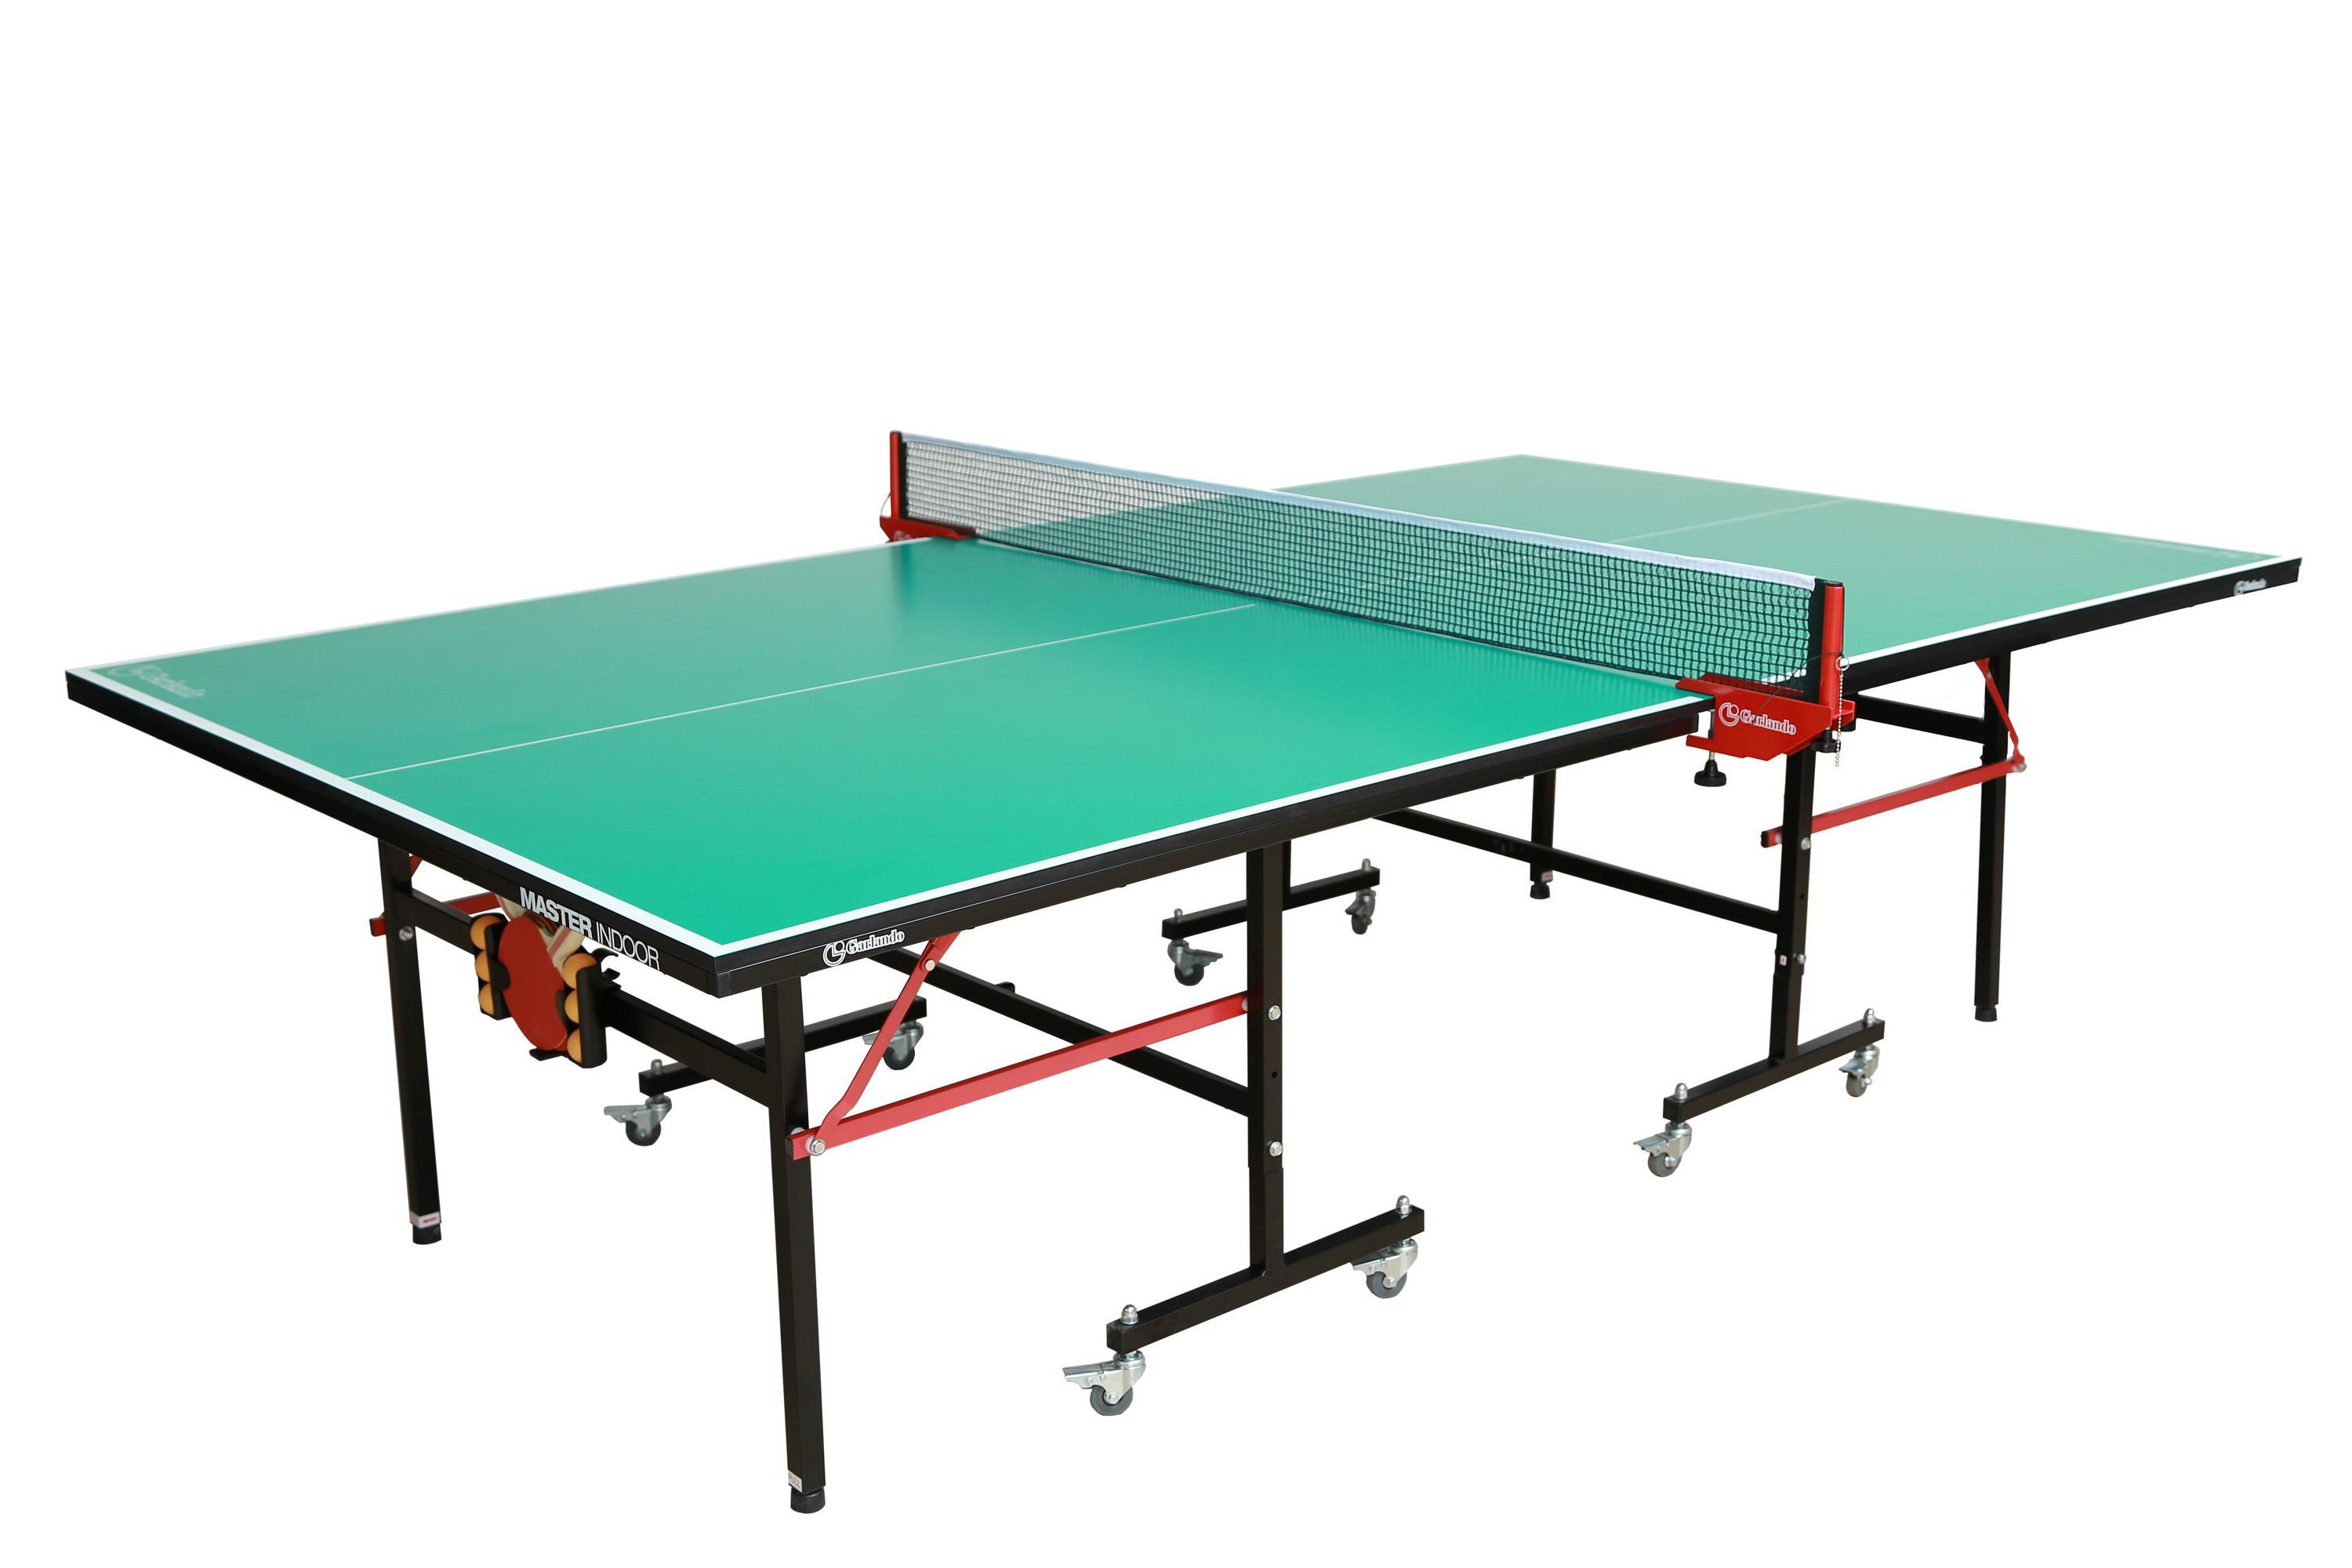 Ping pong table top - Garlando Master Indoor Table Tennis Table